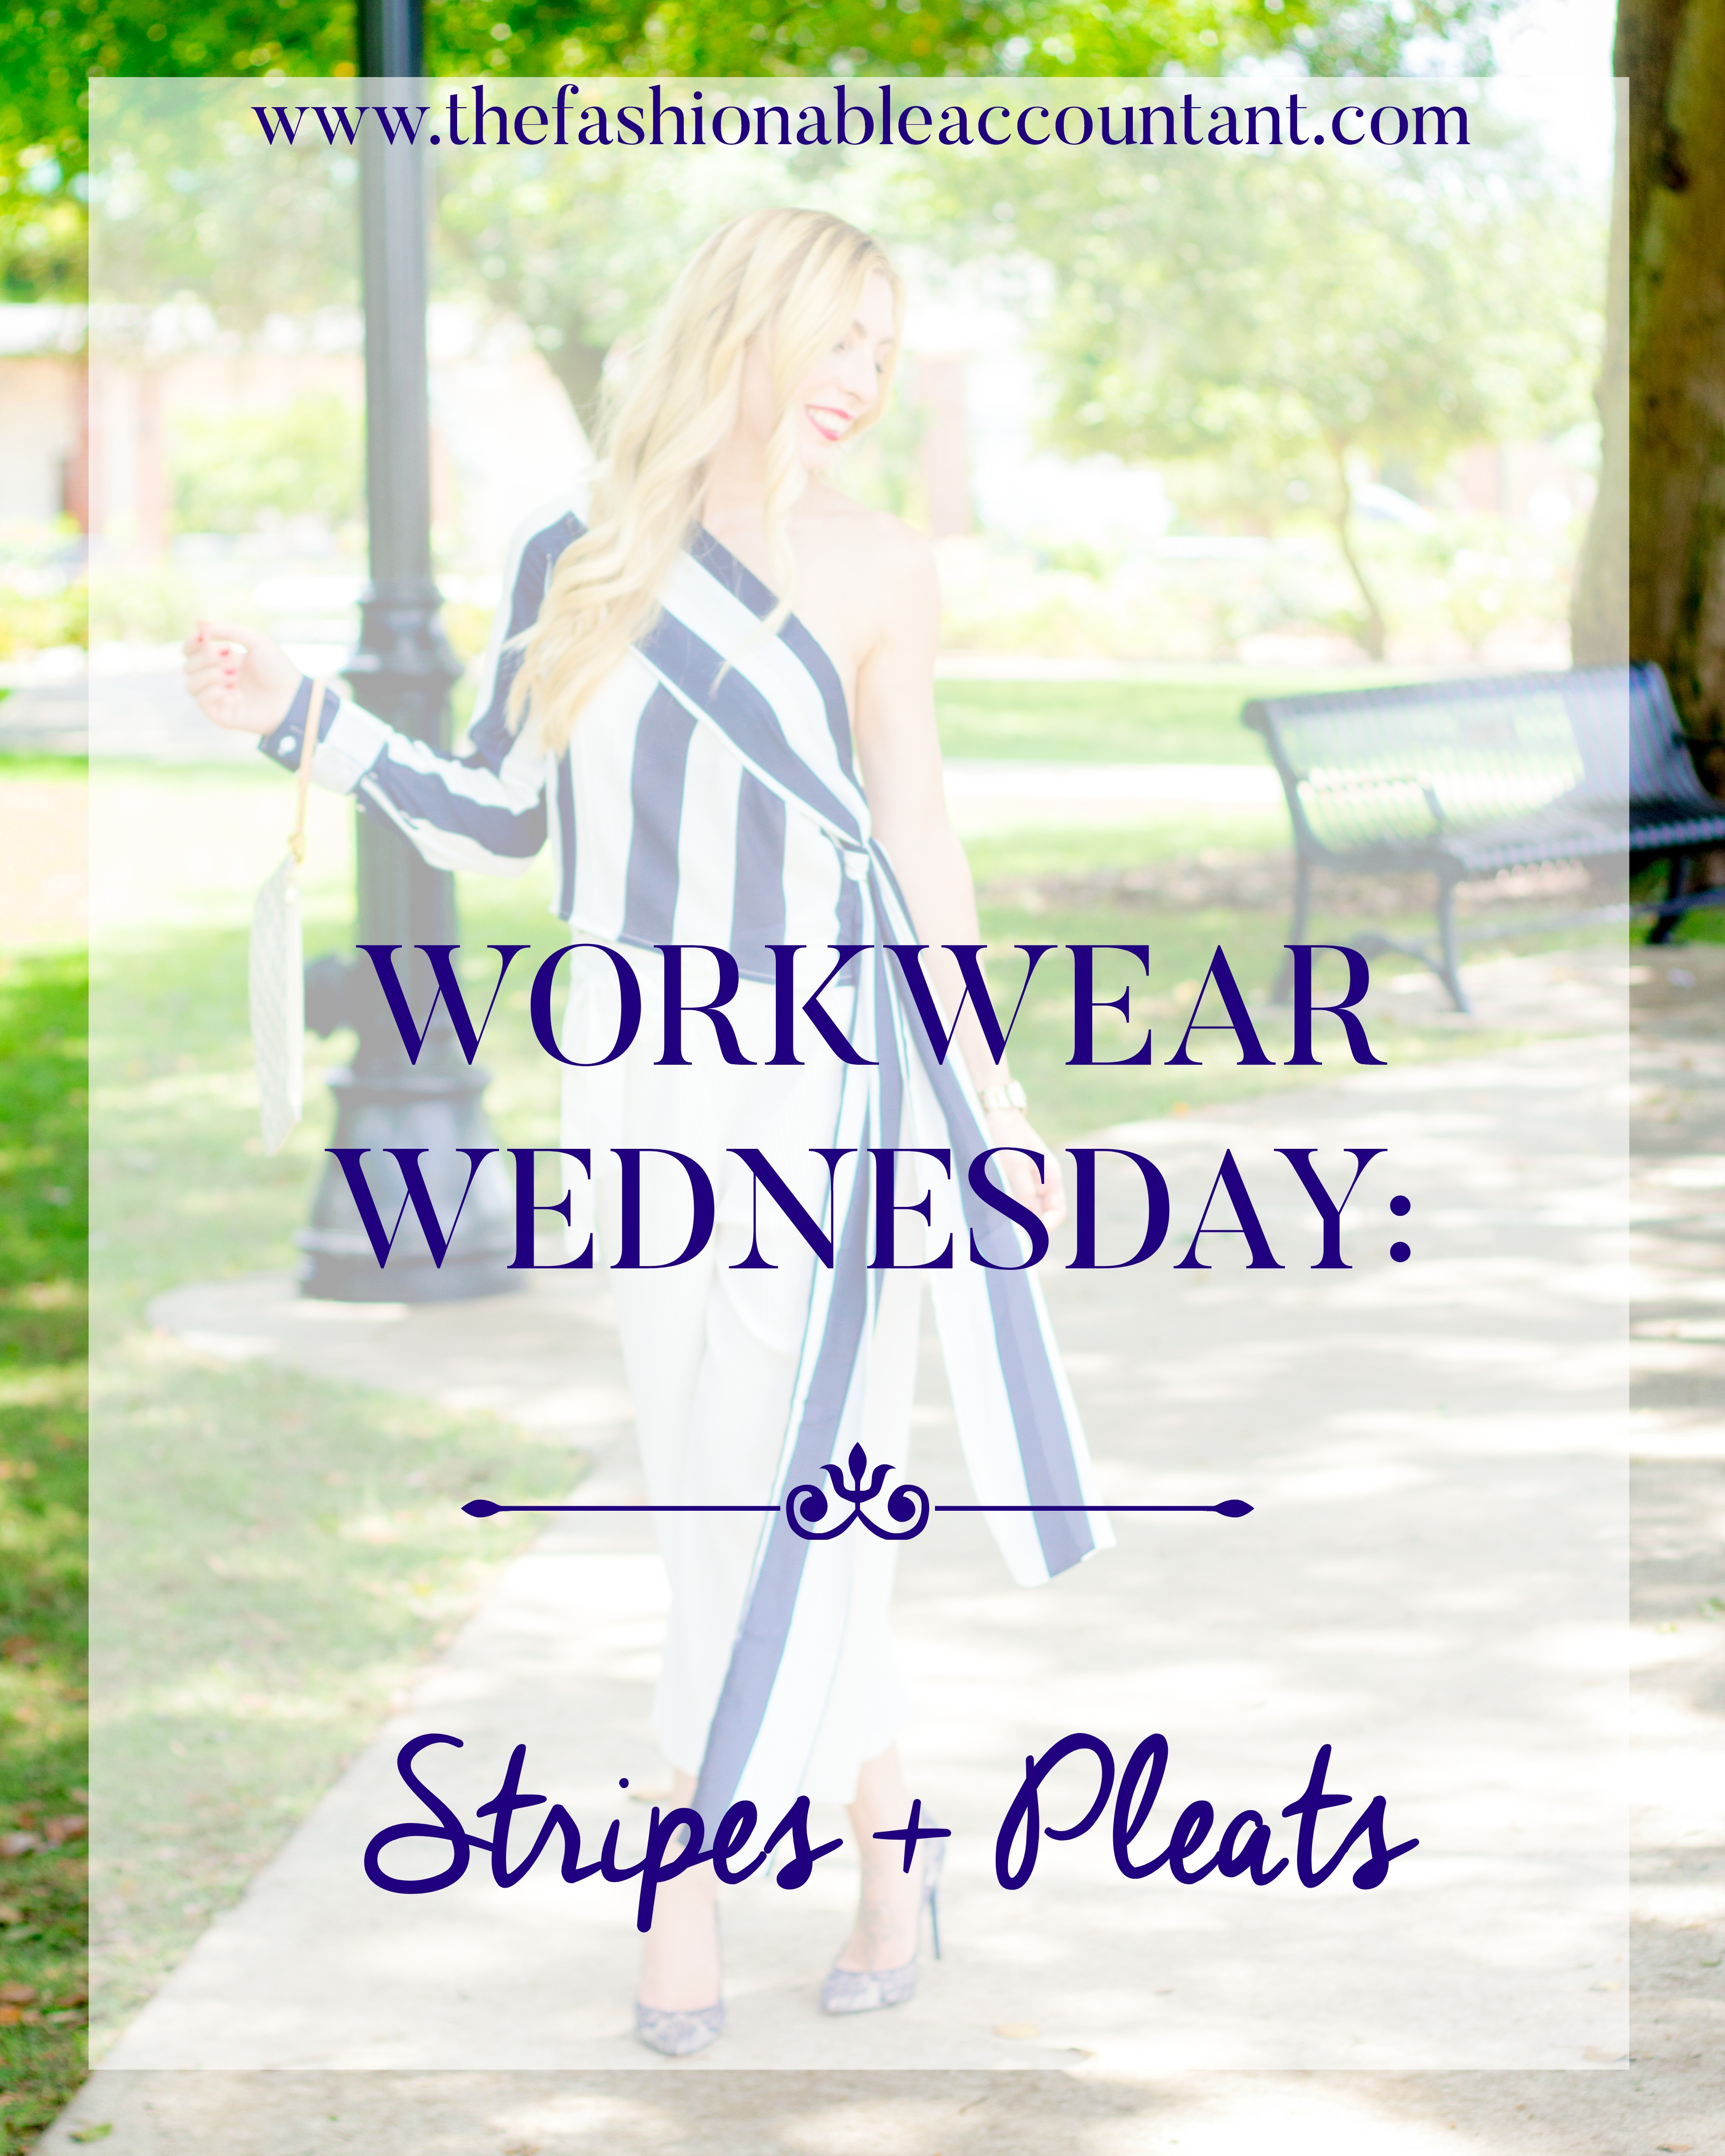 WORKWEAR WEDNESDAY: STRIPES + PLEATS